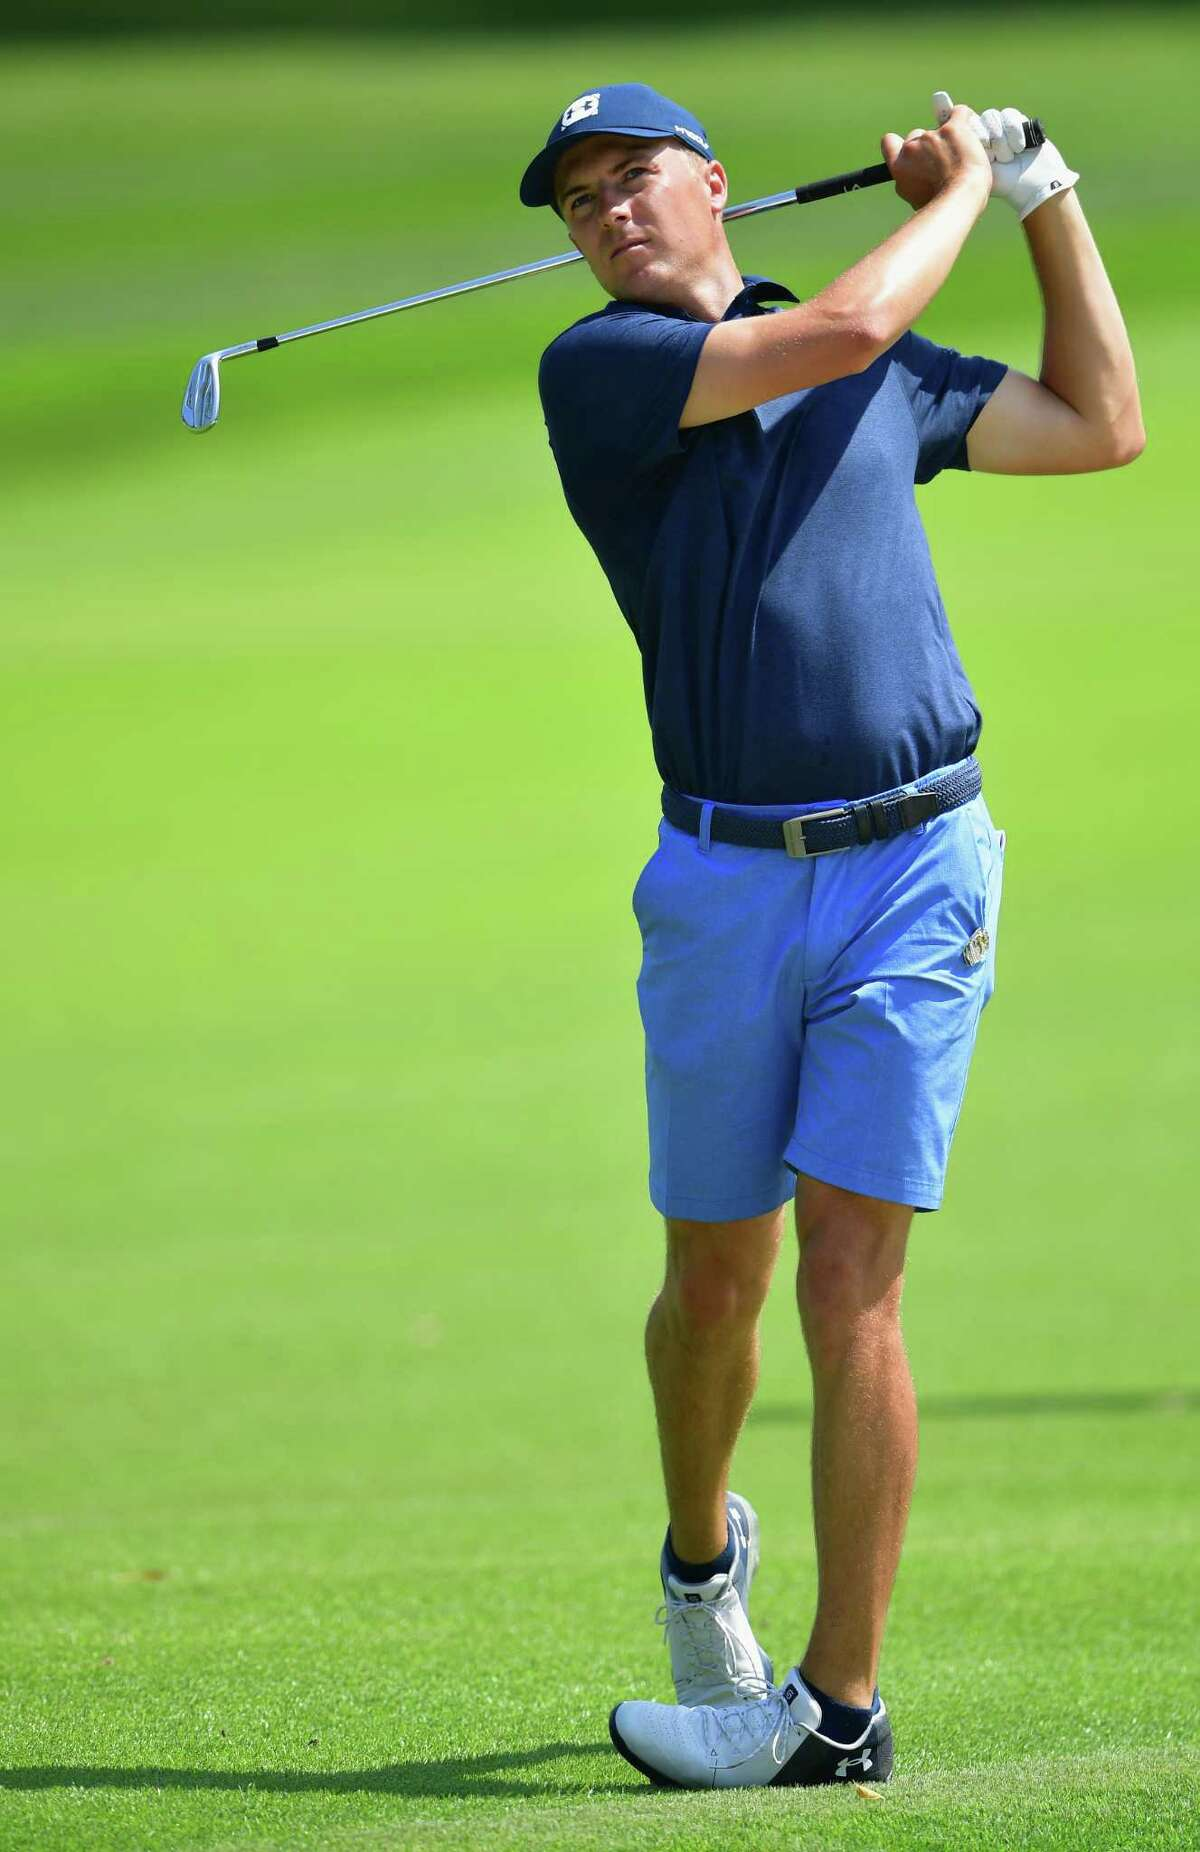 ST. LOUIS, MO - AUGUST 06: Jordan Spieth of the United States plays a shot during a practice round prior to the 2018 PGA Championship at Bellerive Country Club on August 6, 2018 in St. Louis, Missouri. (Photo by Stuart Franklin/Getty Images)